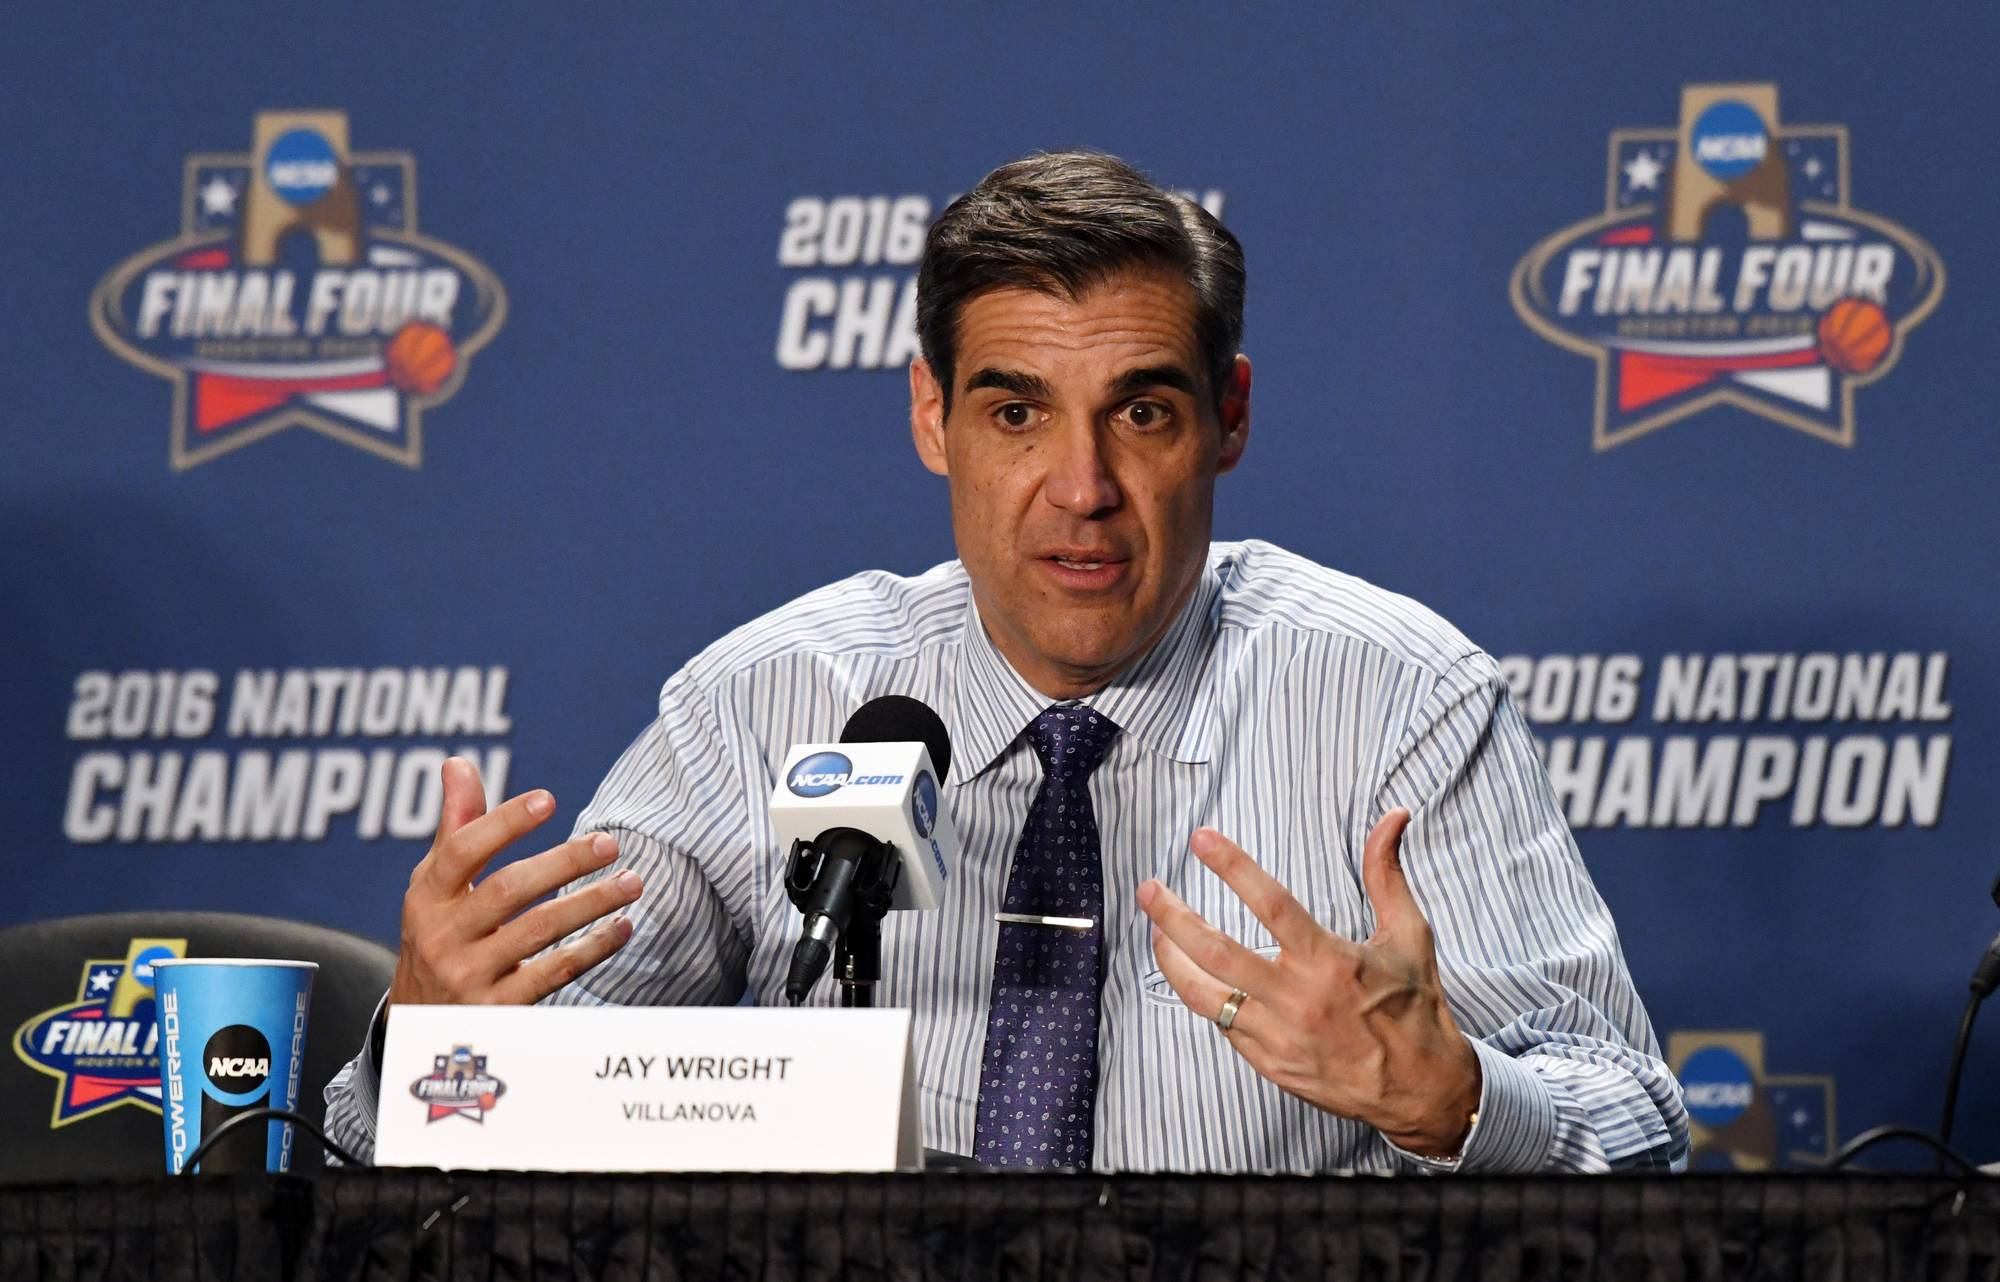 jay wright press confrence - how to dress like jay wright